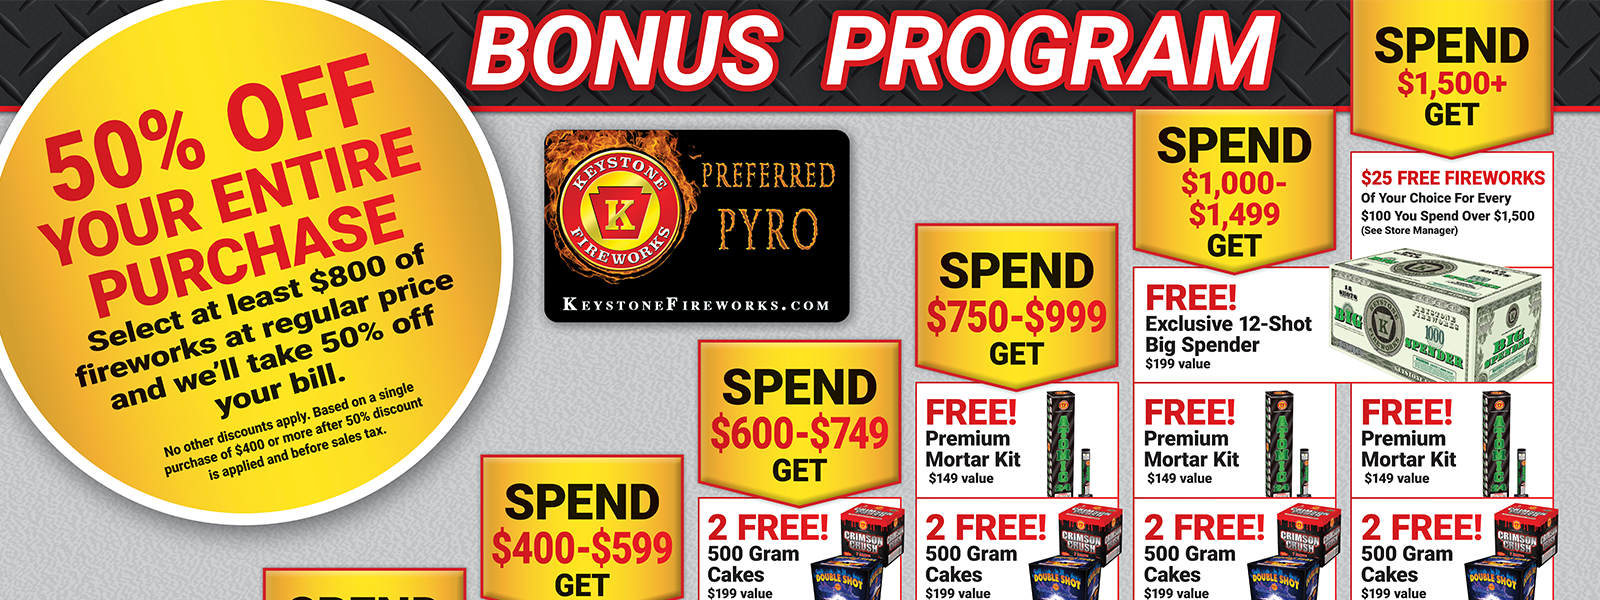 GET FREE FIREWORKS WITH OUR BONUS PROGRAM